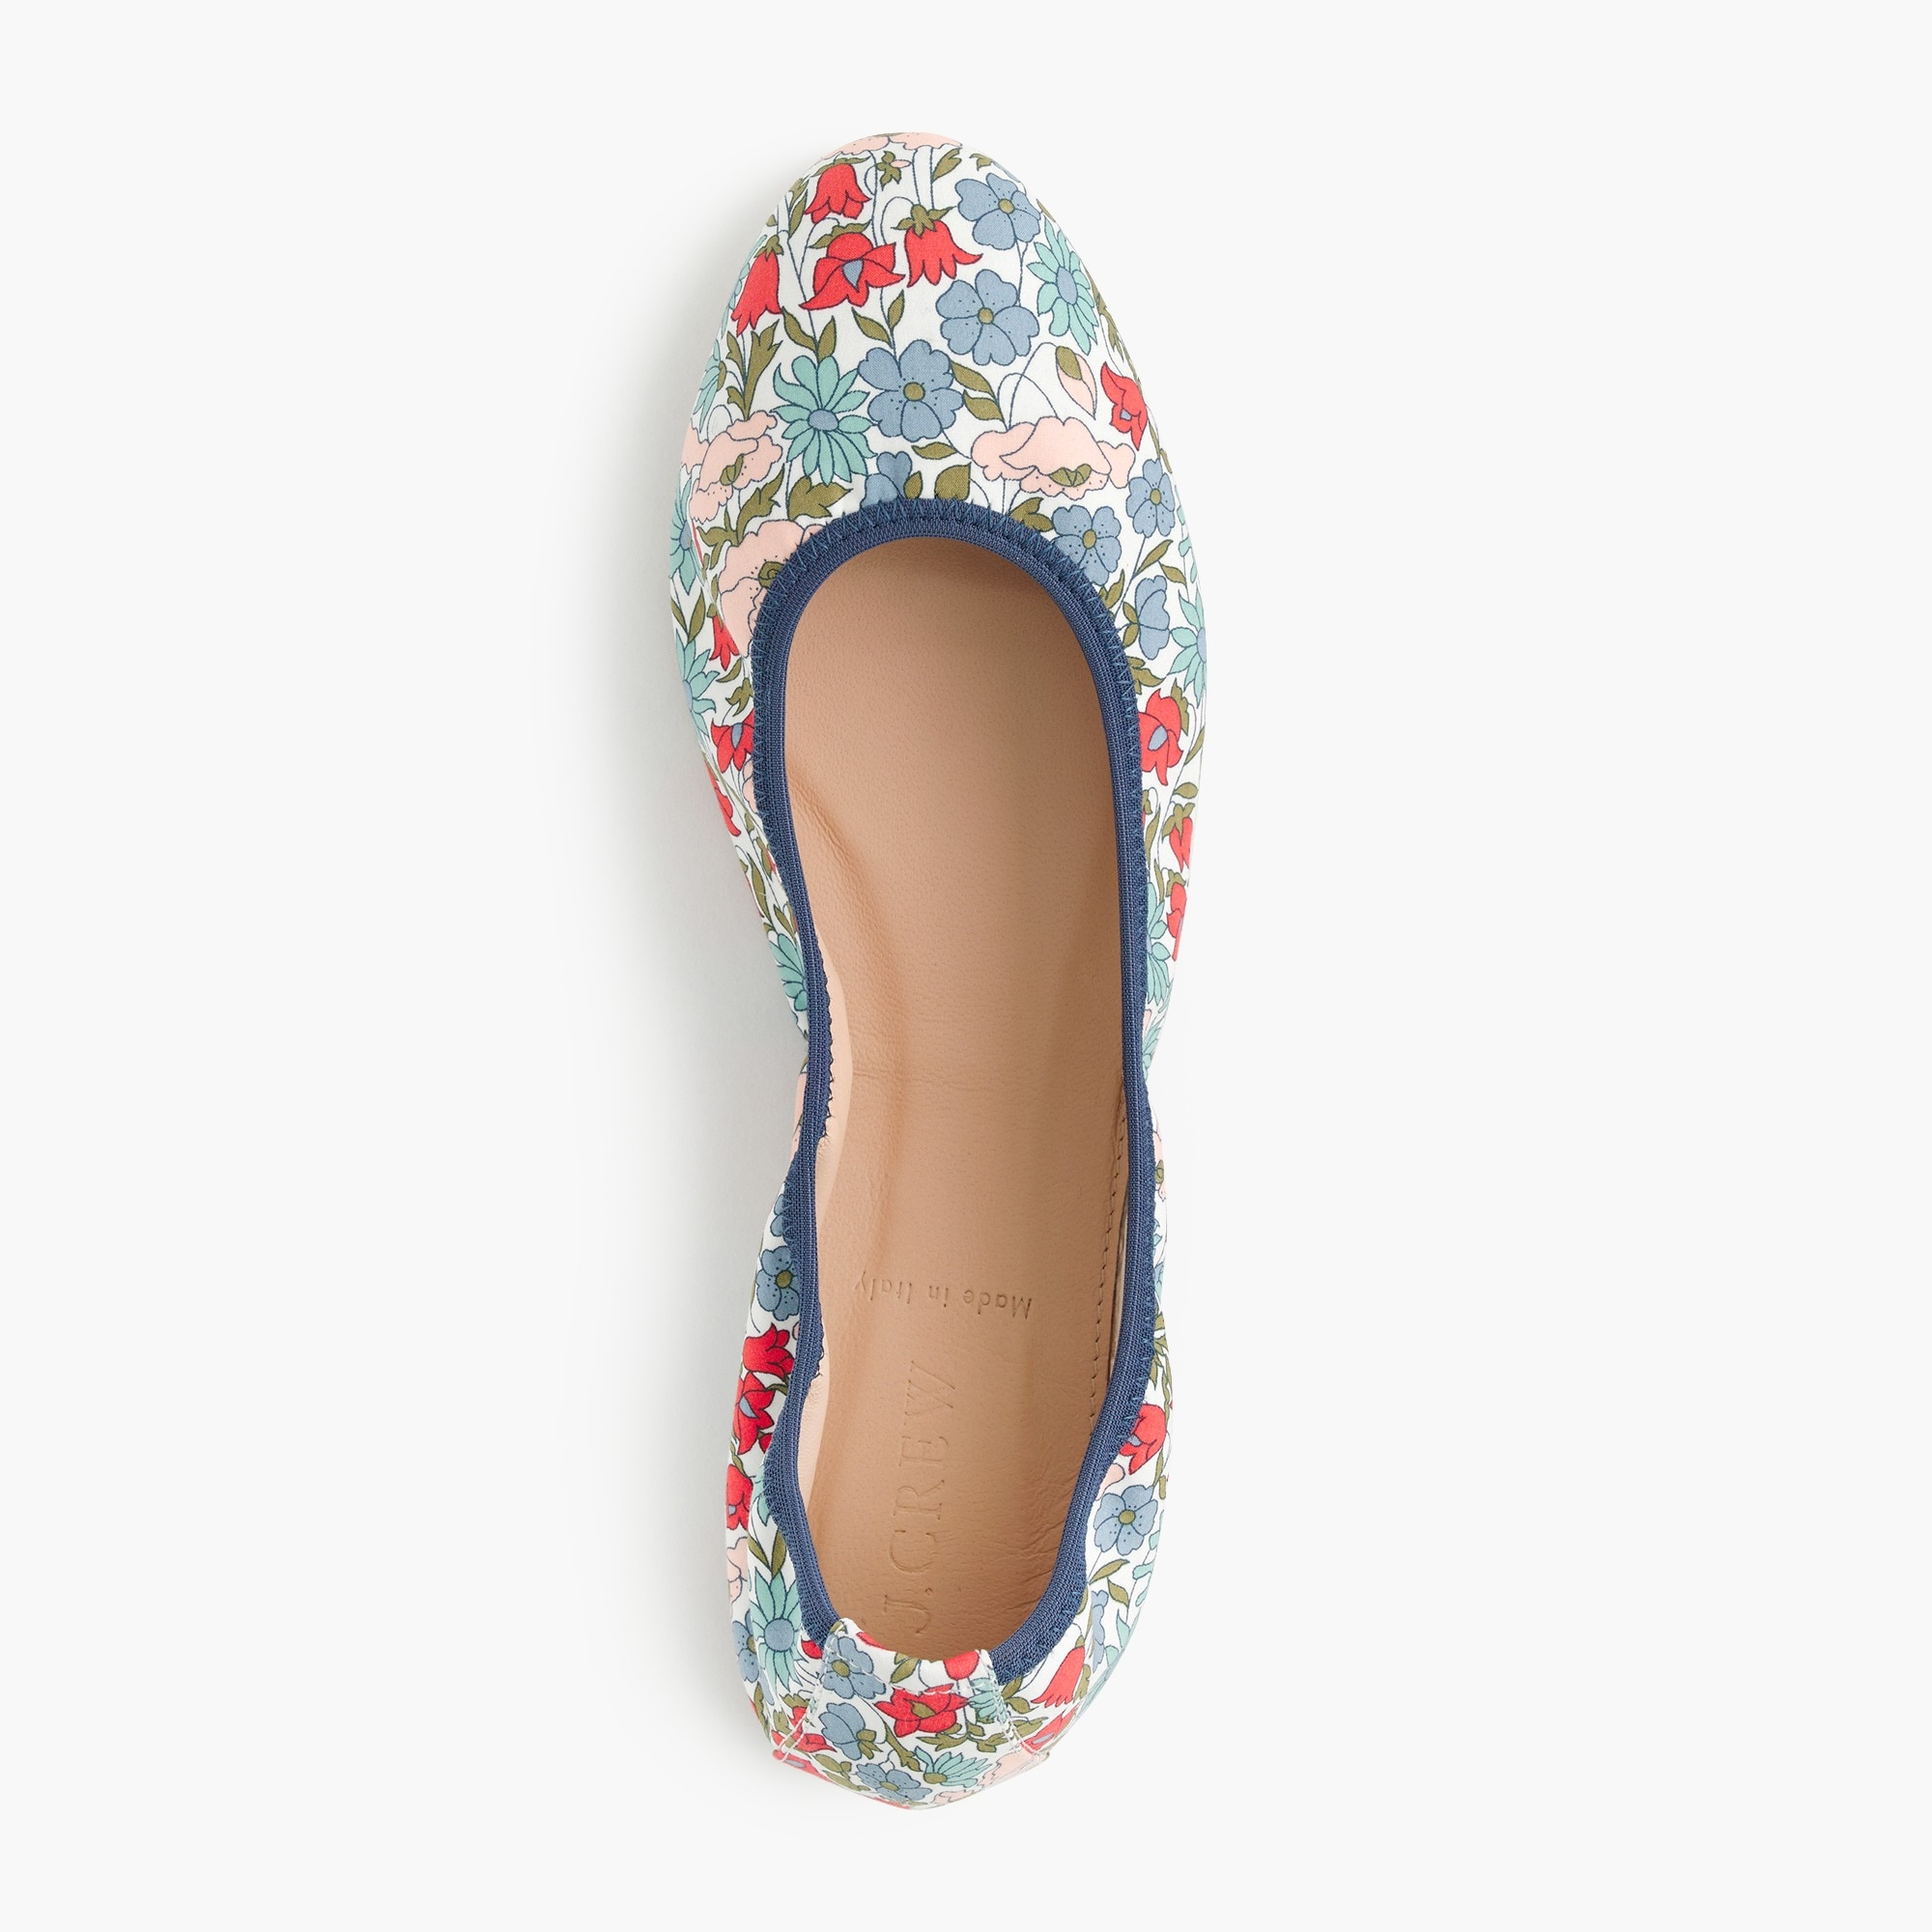 Image 2 for Lea ballet flats in Liberty® poppy and daisy floral